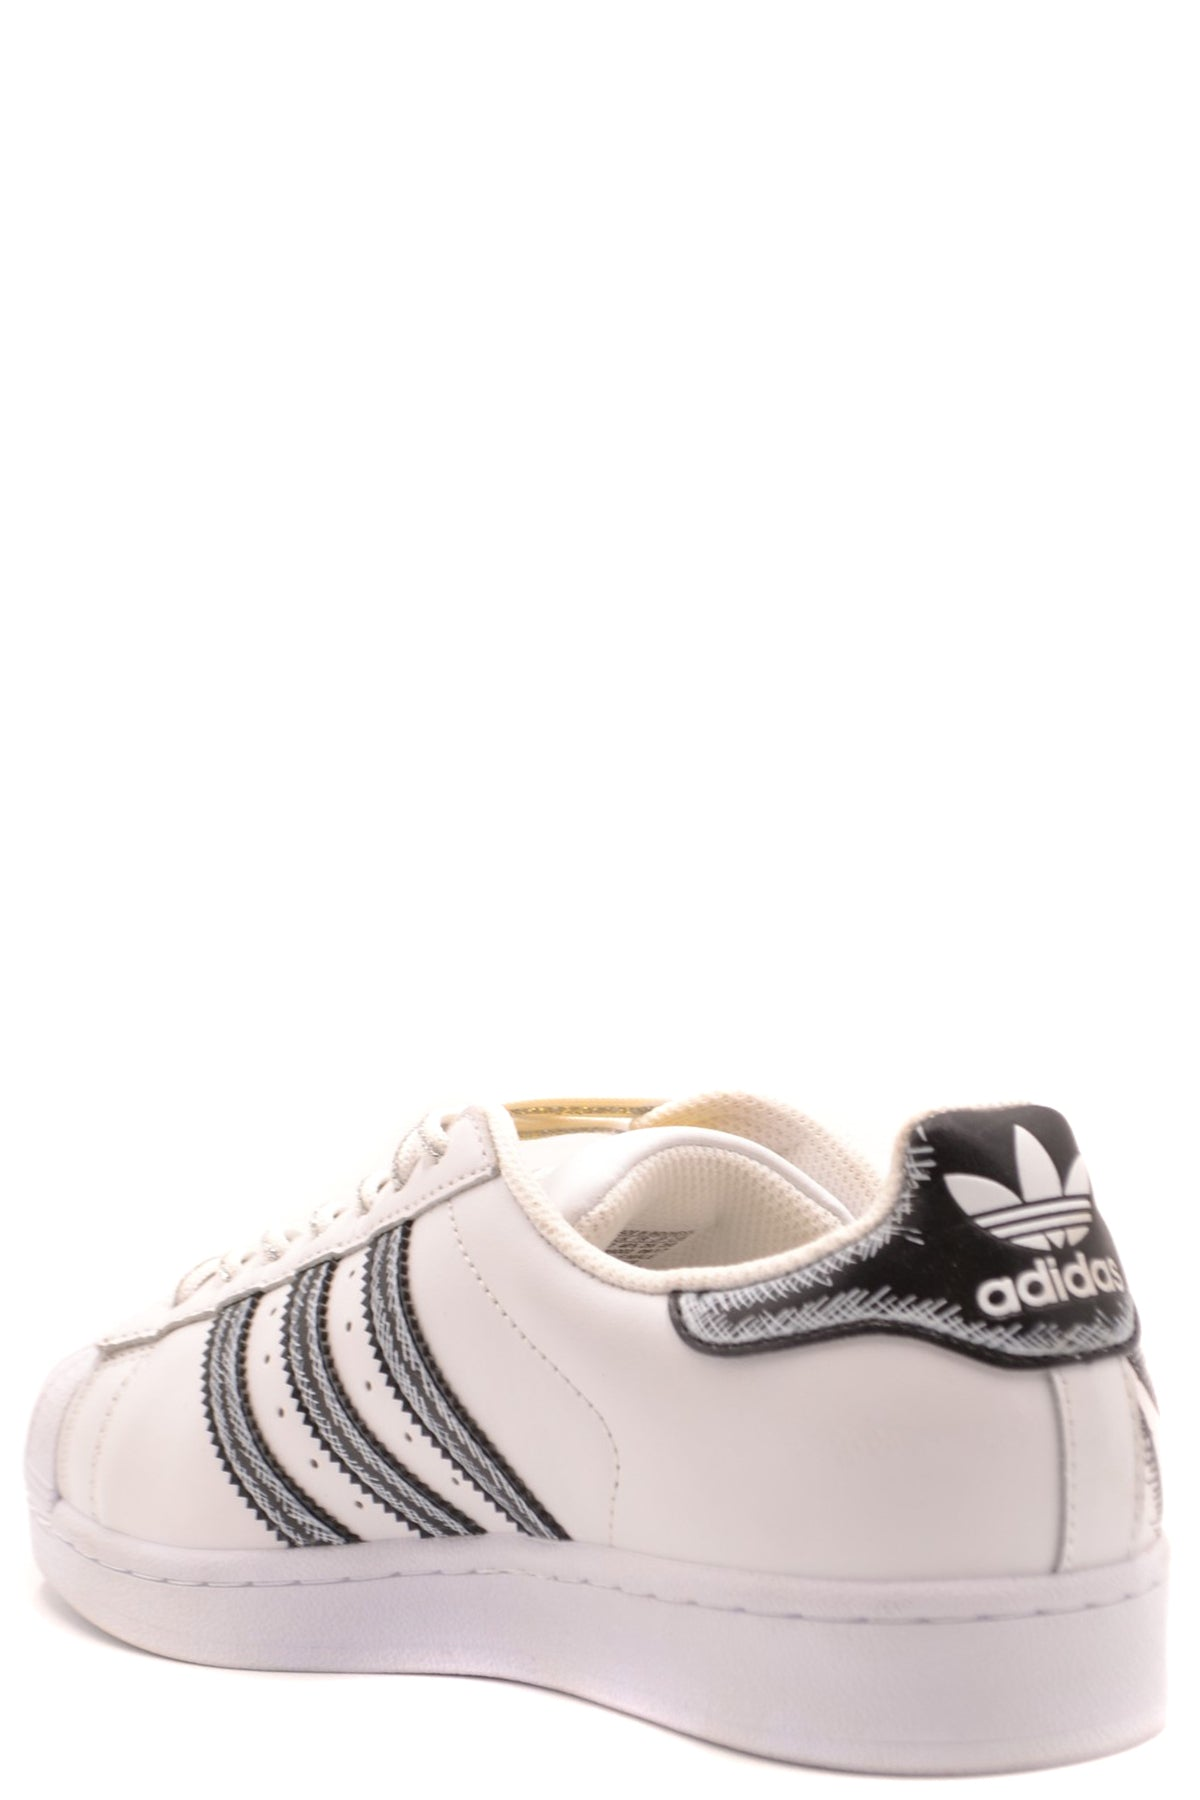 Shoes Adidas-Sports & Entertainment - Sneakers-Product Details Manufacturer Part Number: Absoxì0314/V10Year: 2020Composition: Leather 100%Size: UkGender: ManMade In: ChinaSeason: Spring / SummerType Of Accessory: ShoesMain Color: WhiteTerms: New With Label-Keyomi-Sook